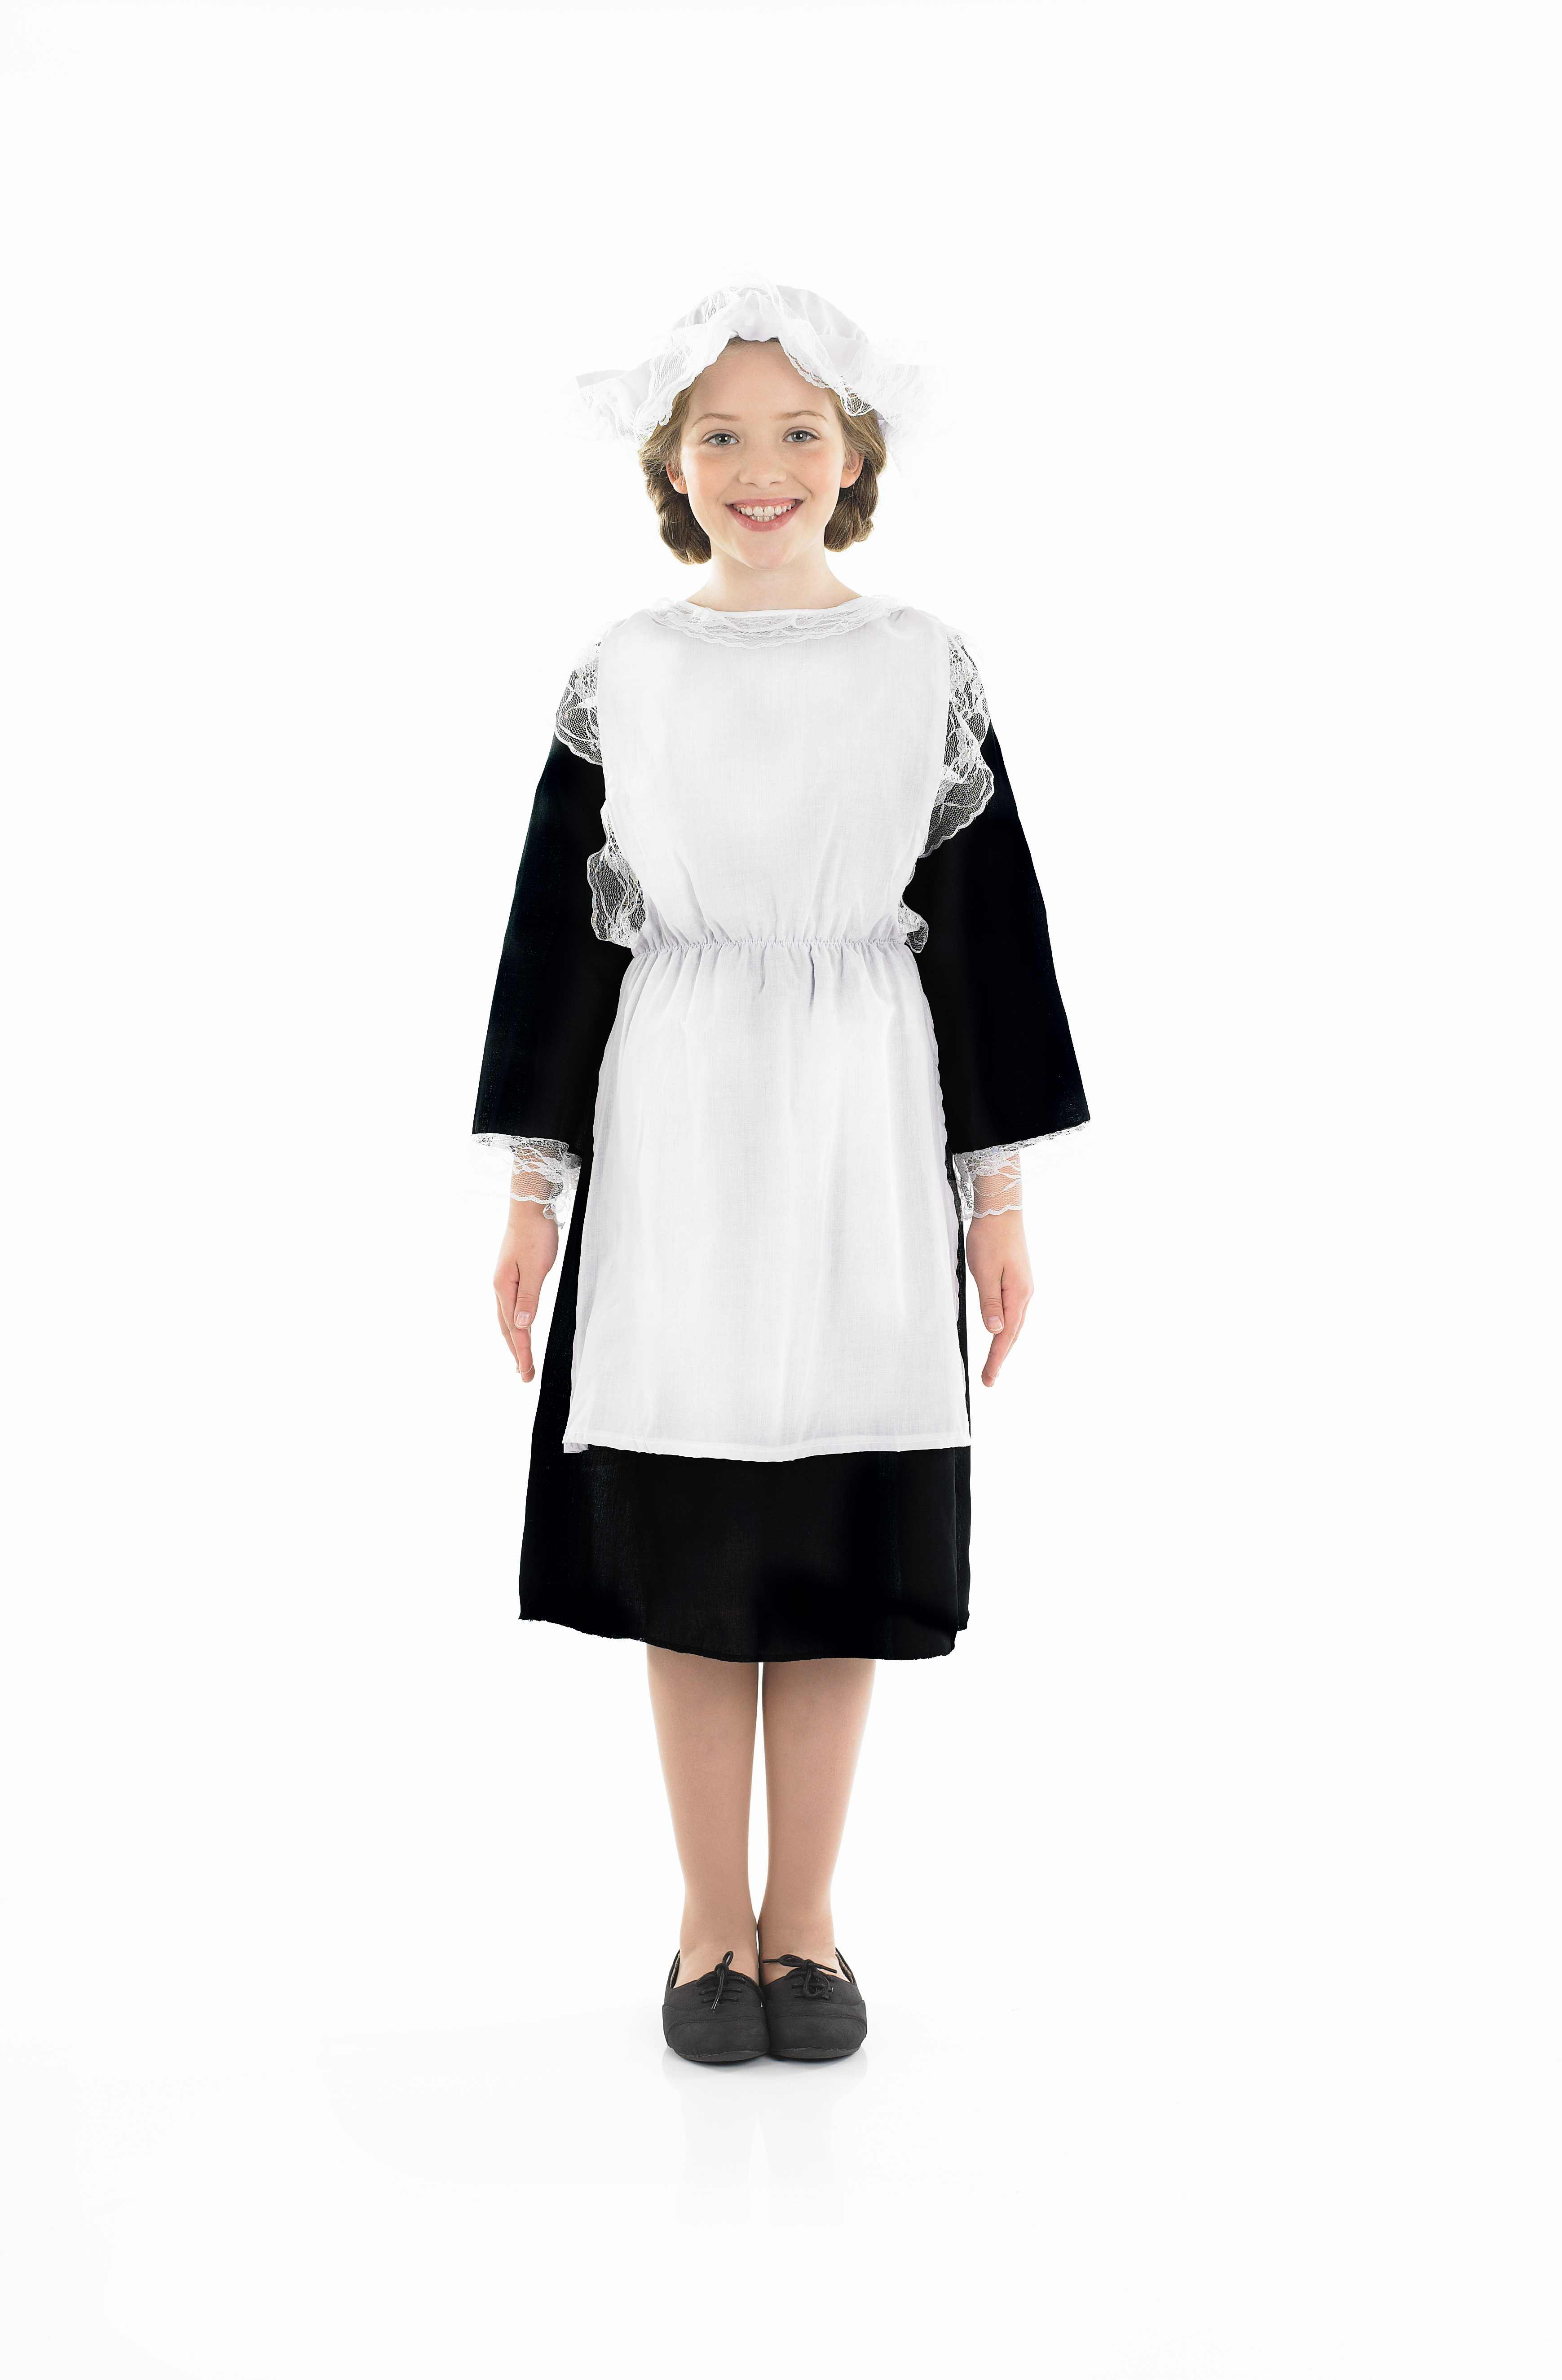 Girls Victorian Girl Costume for Historic Book Day Fancy Dress Up Outfits